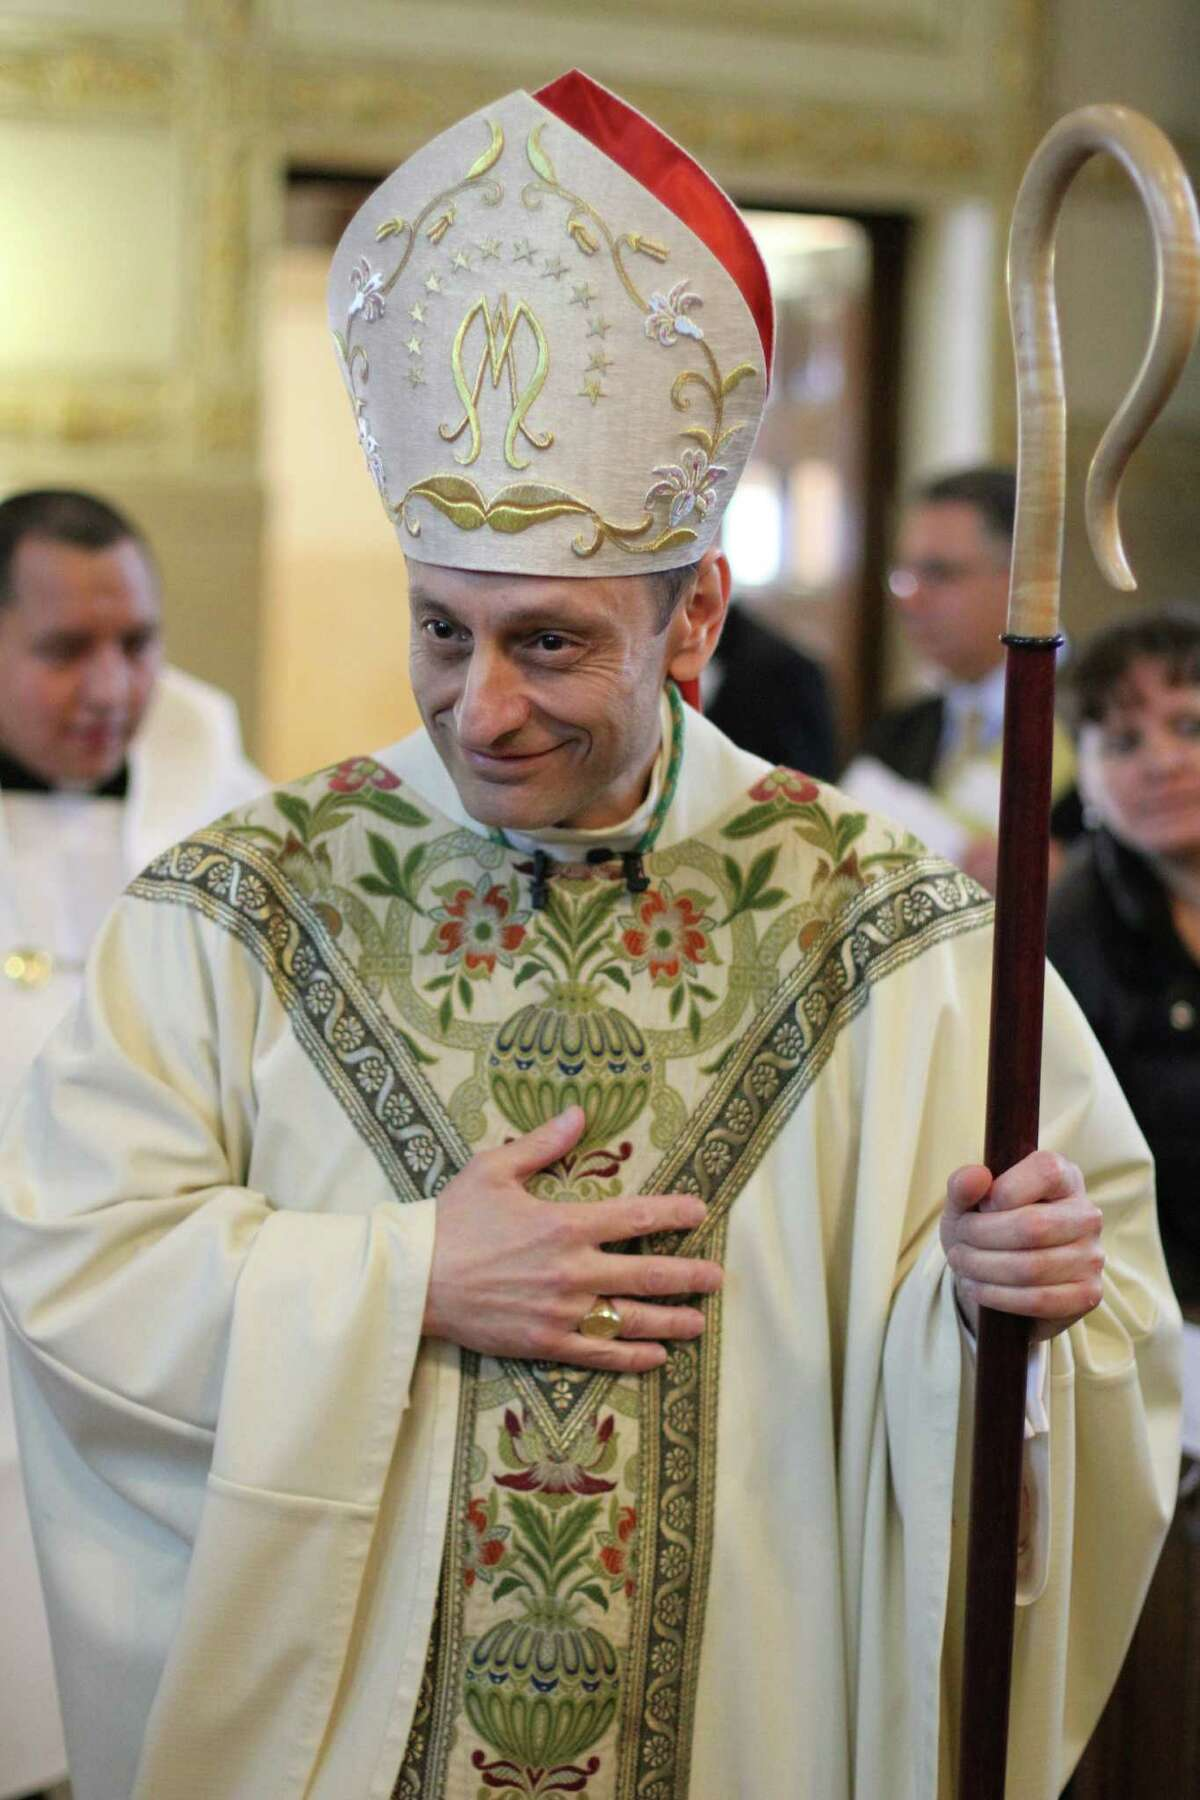 Auxiliary Bishop Frank J. Caggiano of Brooklyn, N.Y., smiles as he arrives to preside at the ordination of permanent deacons at Our Lady of Angels Church in the Bay Ridge neighborhood of the New York borough of Brooklyn May 25, 2013.